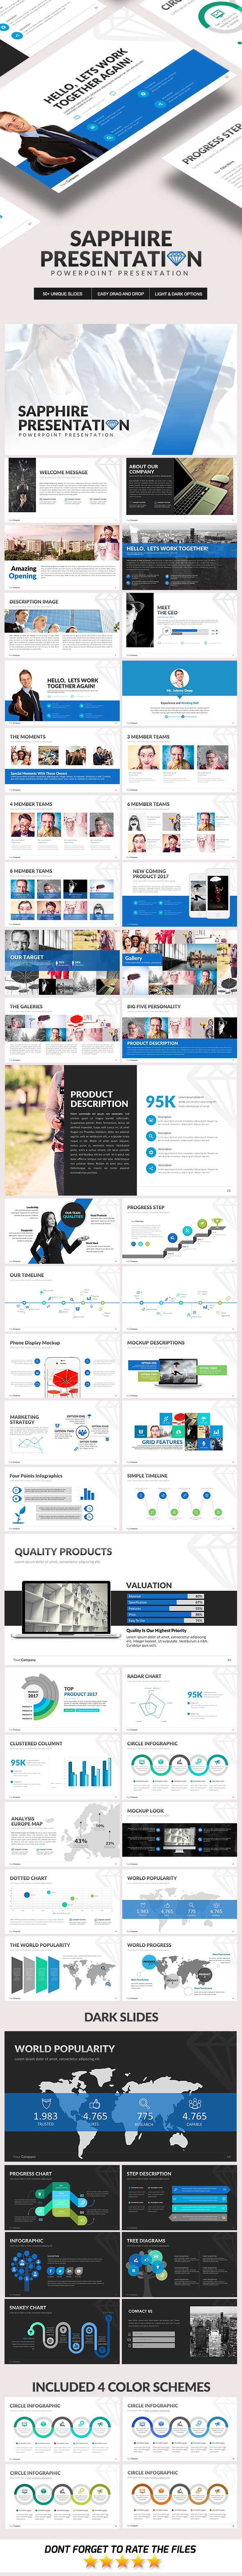 Sapphire Powerpoint Template - Business PowerPoint Templates